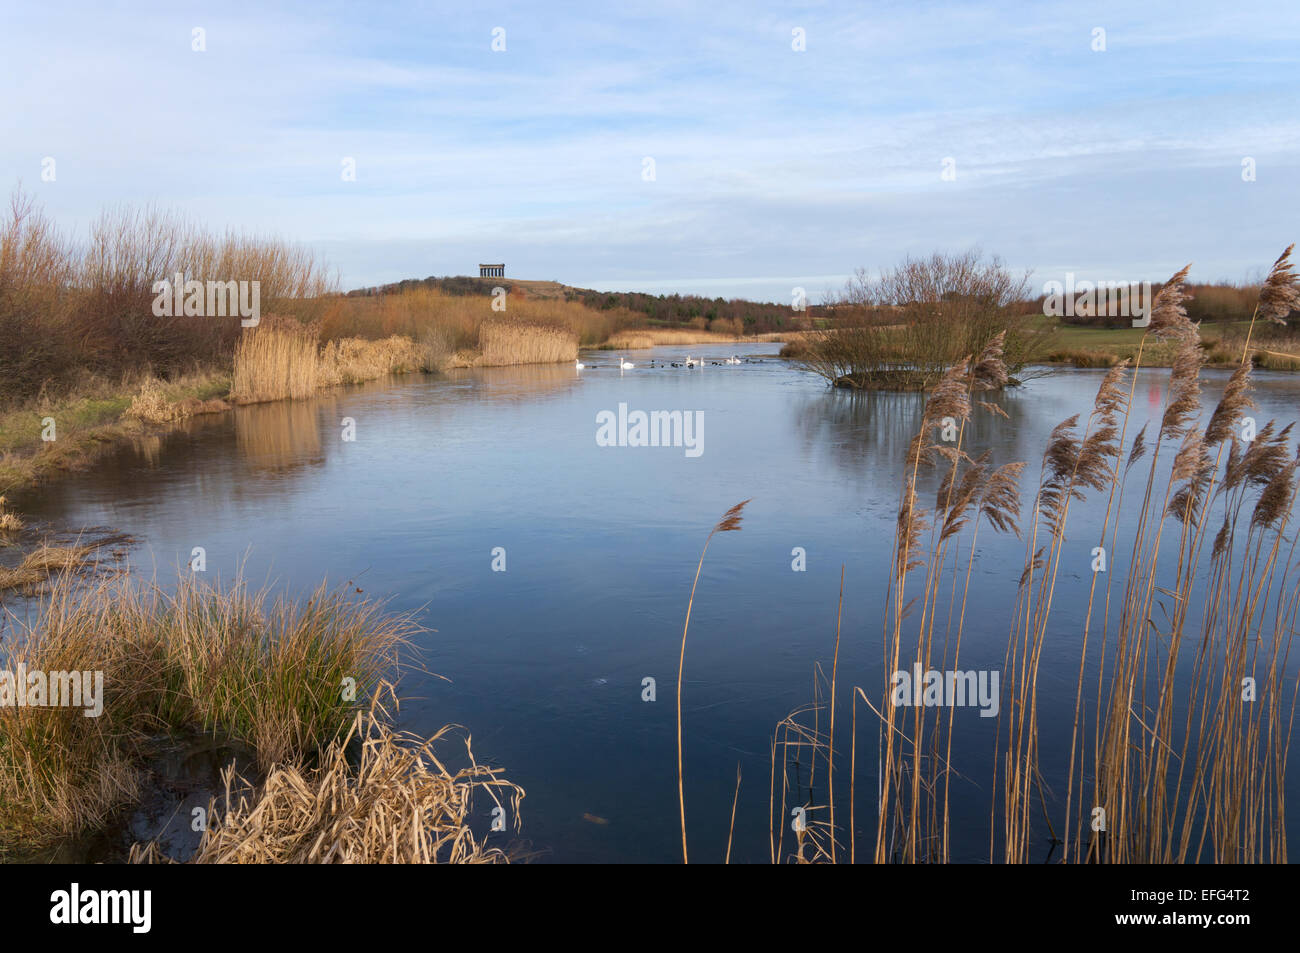 Scenic view over the fishing lake towards Penshaw Monument, Herrington Country Park, north east England, UK Stock Photo